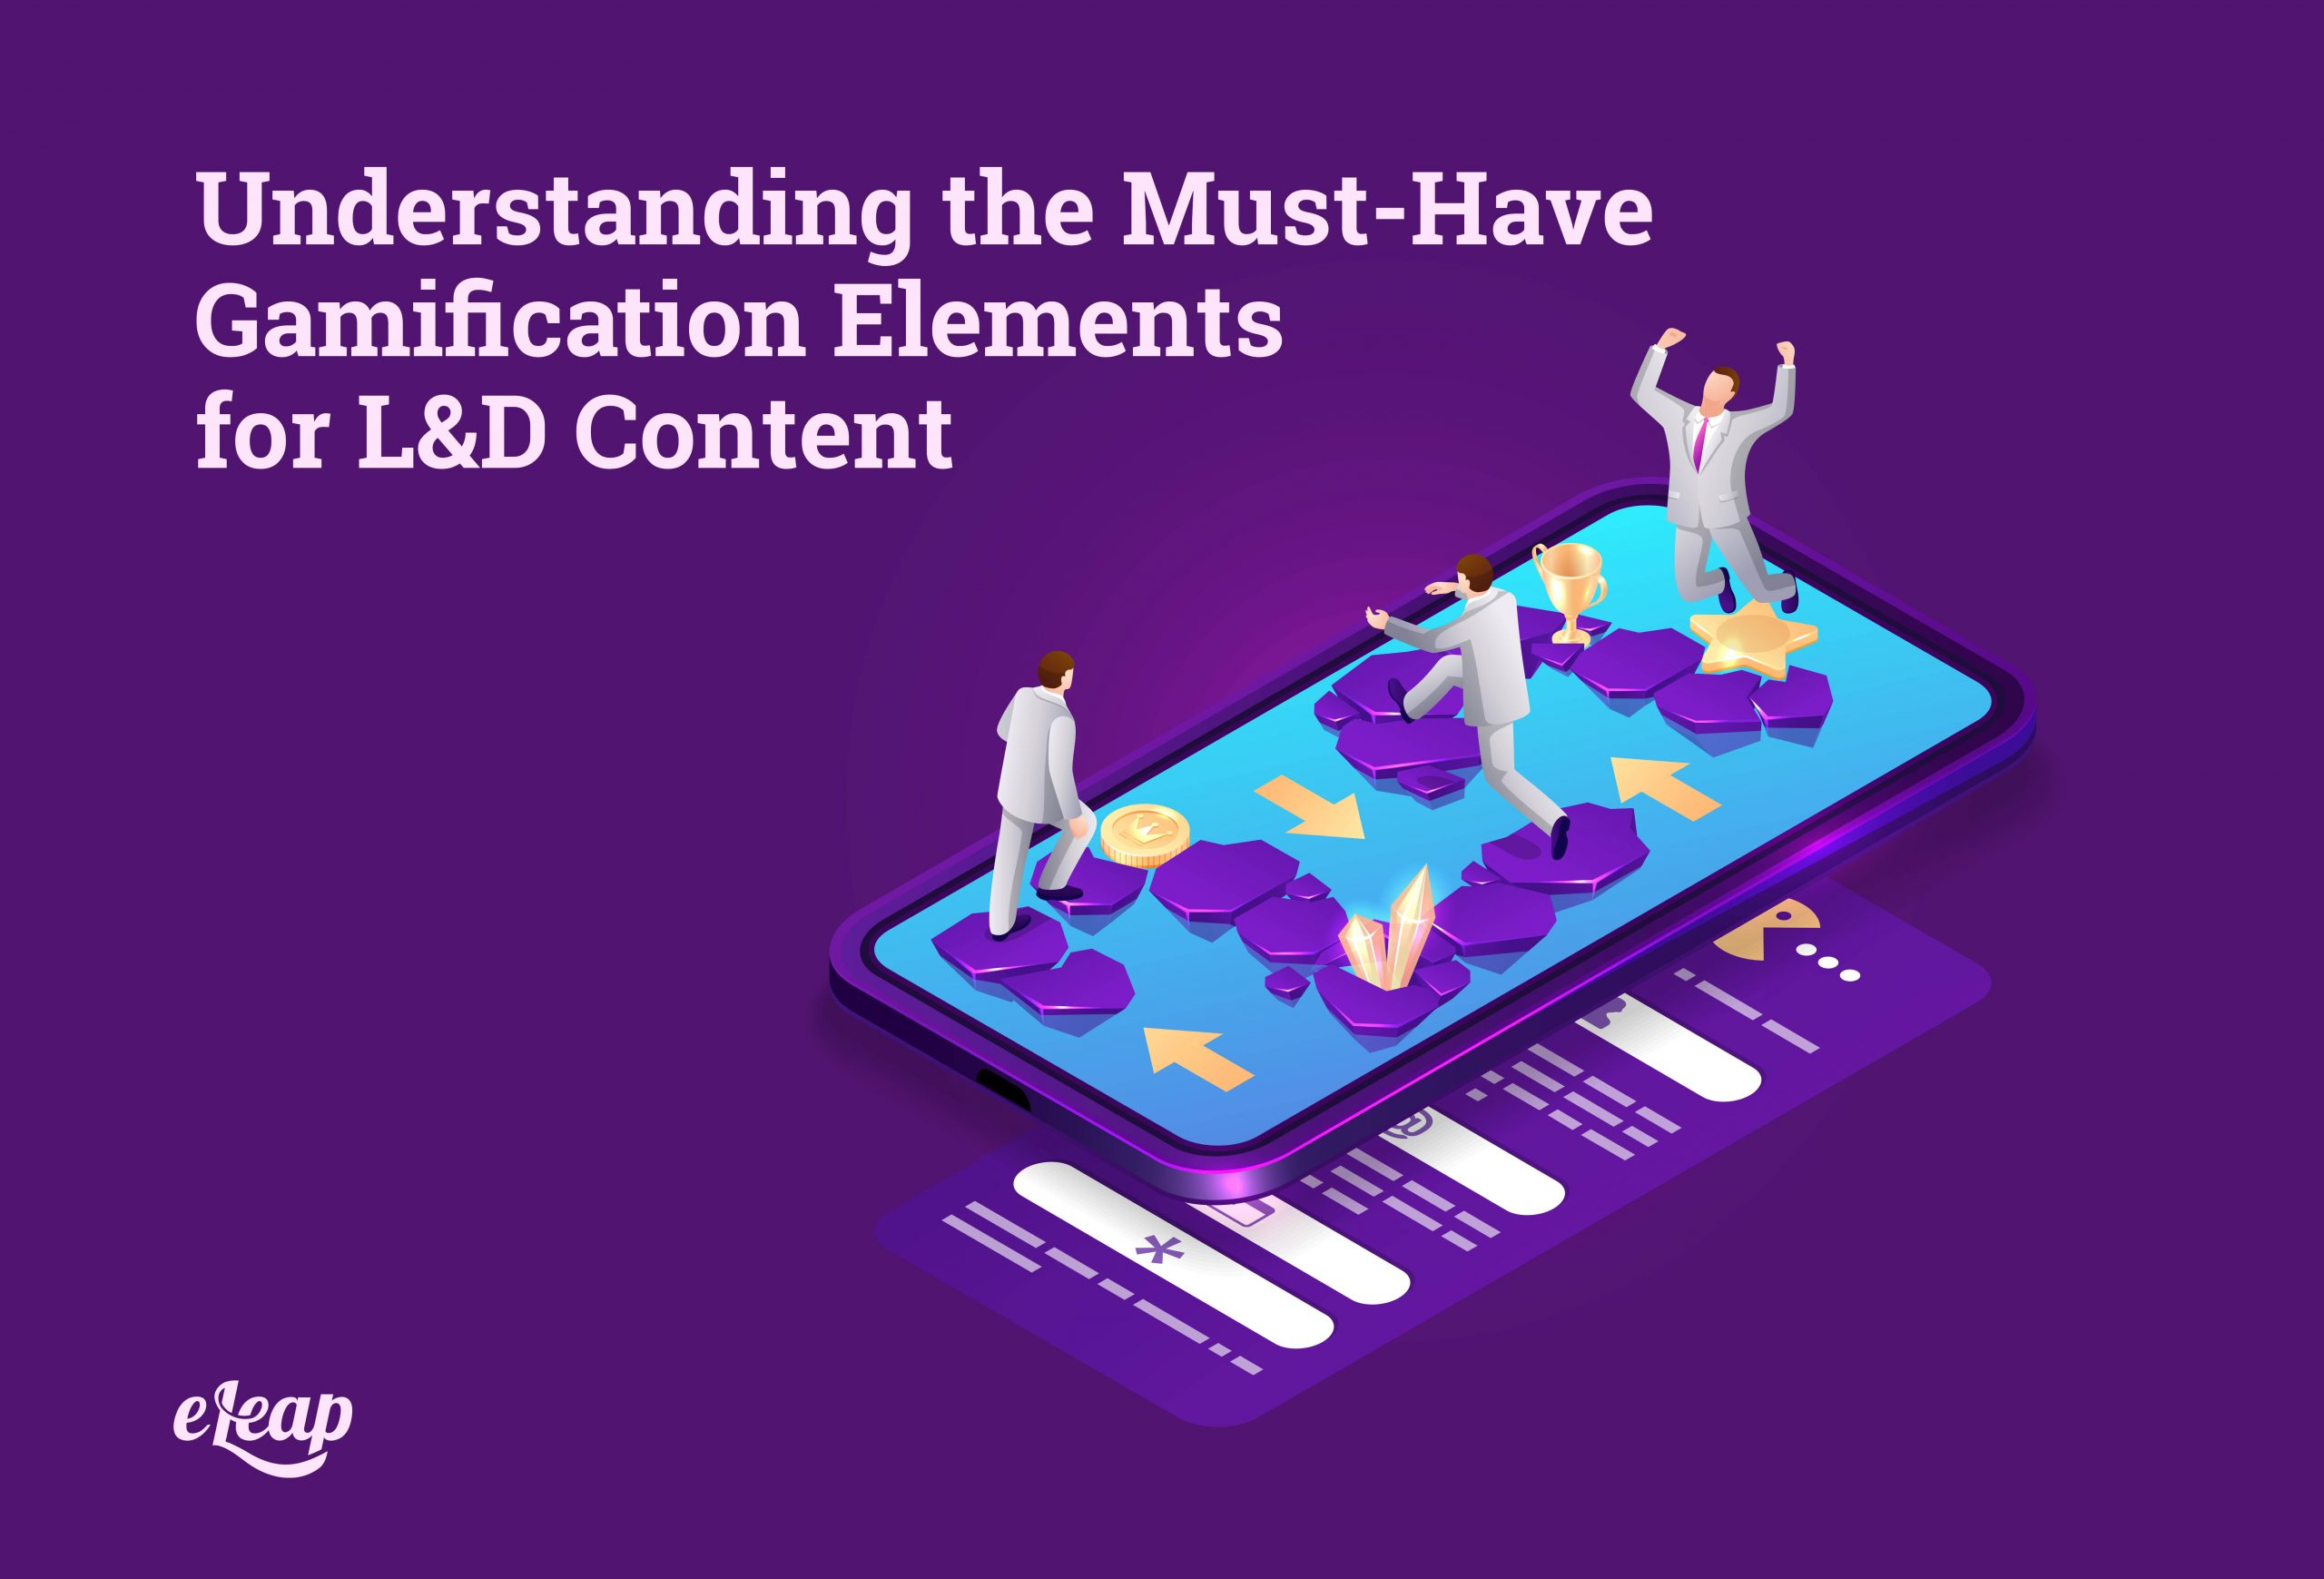 Understanding the Must-Have Gamification Elements for L&D Content